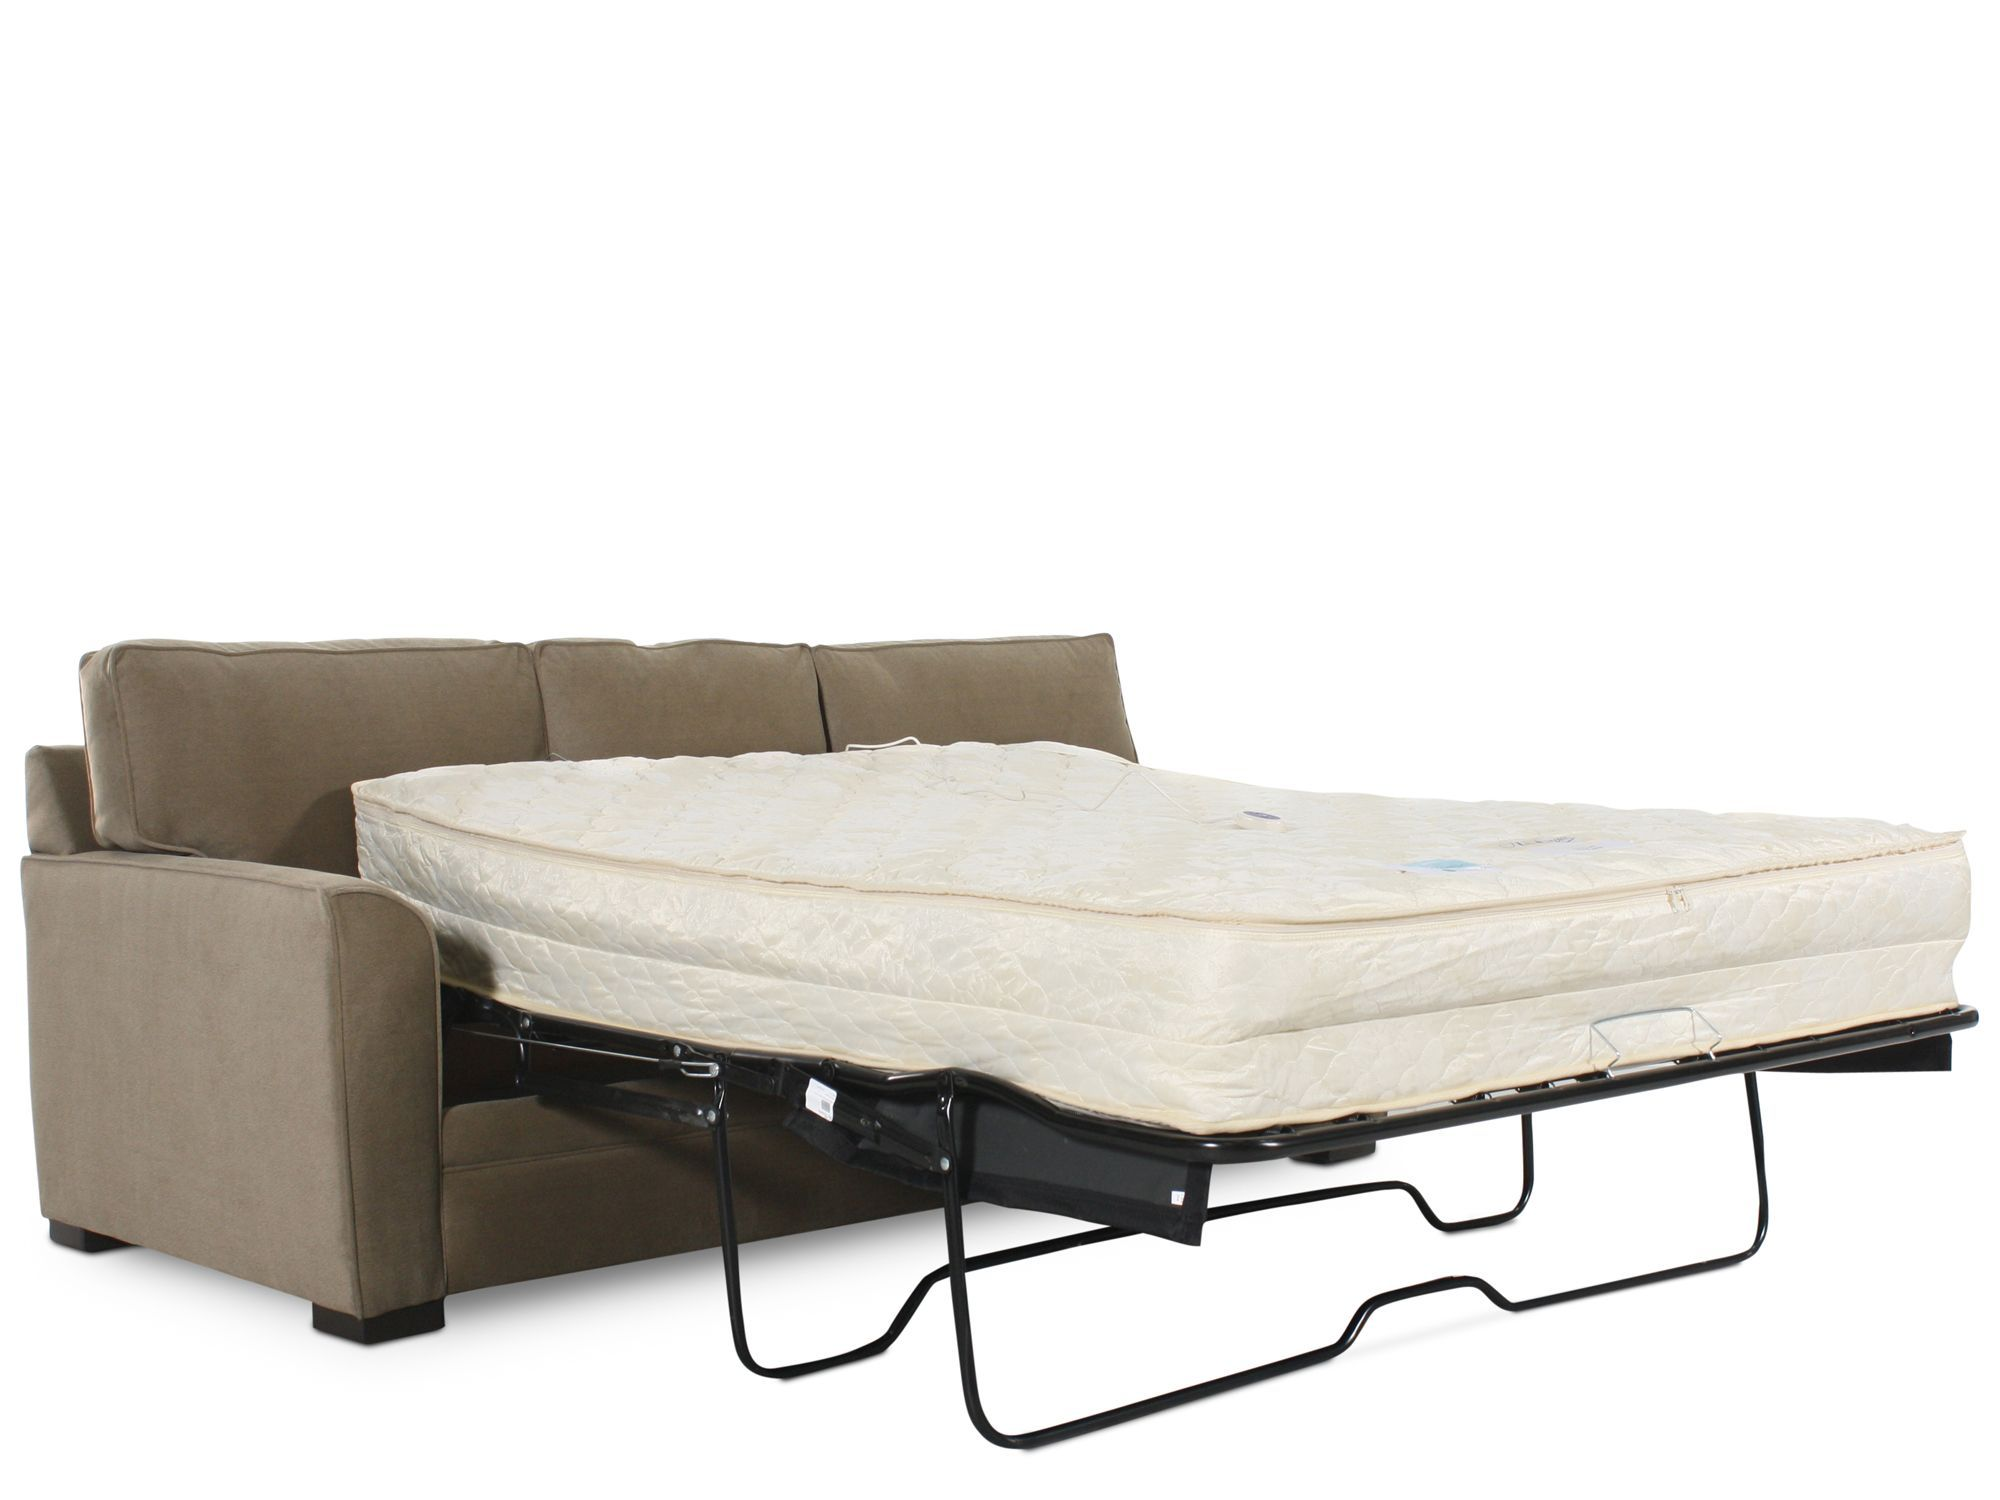 Exceptionnel Sleeper Sofa With Air Mattress Image HD